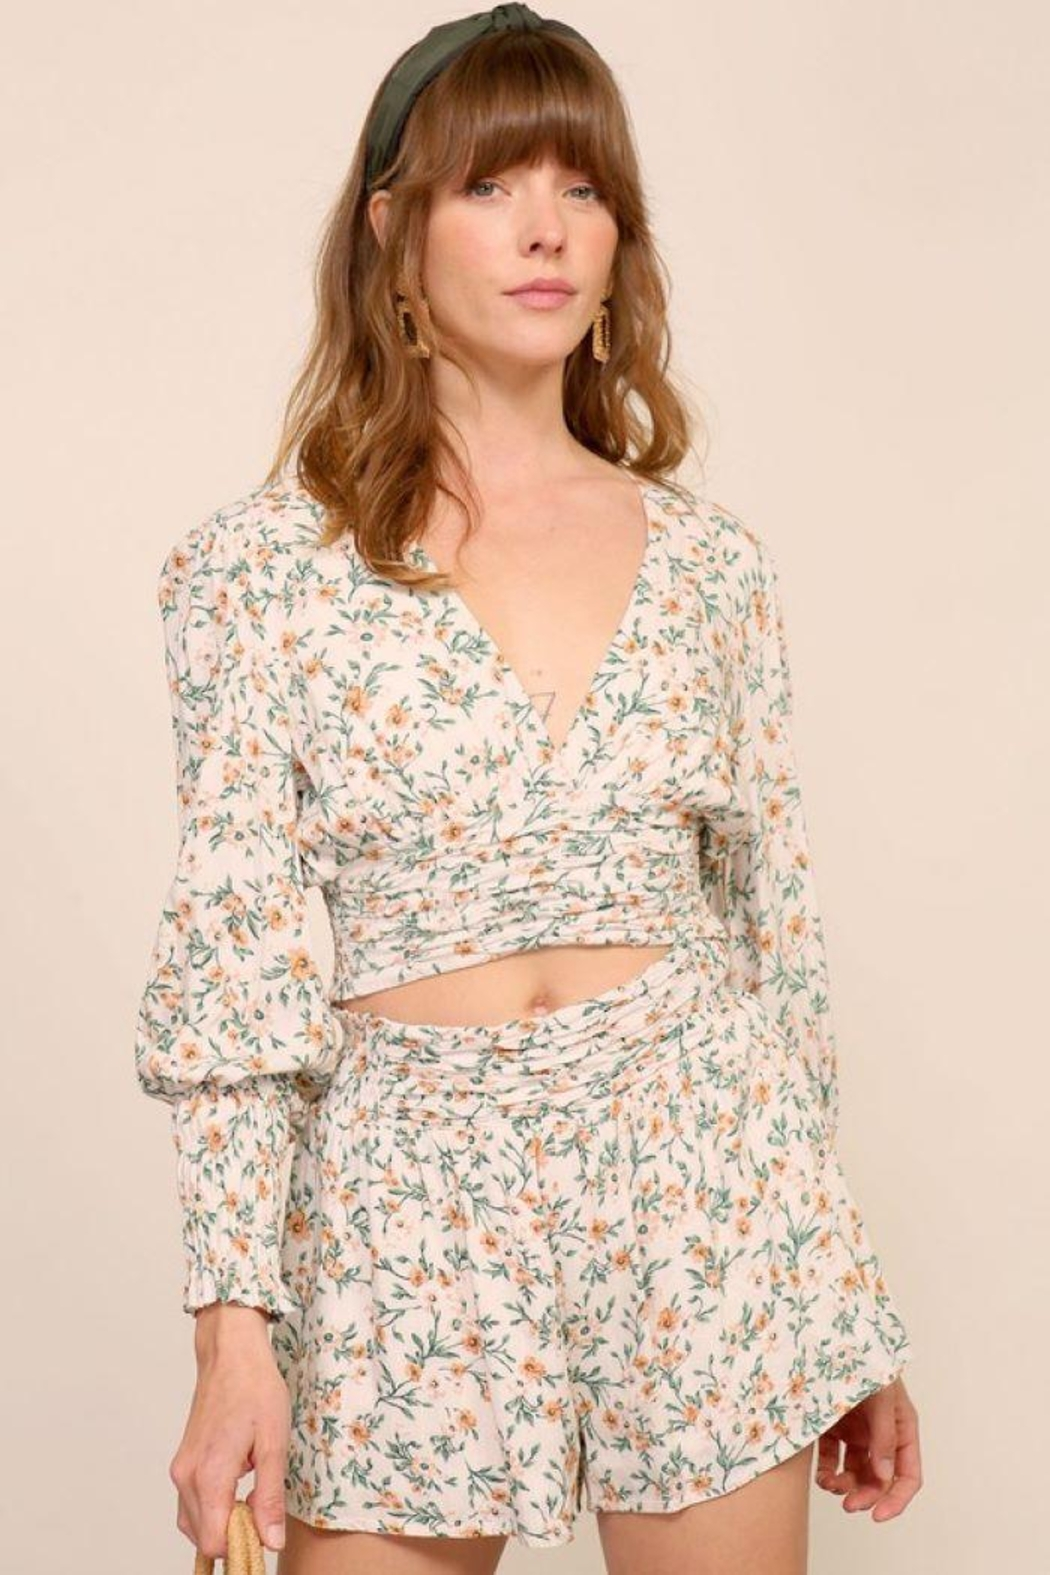 Lumiere Smocking Detail Floral Top - Main Image